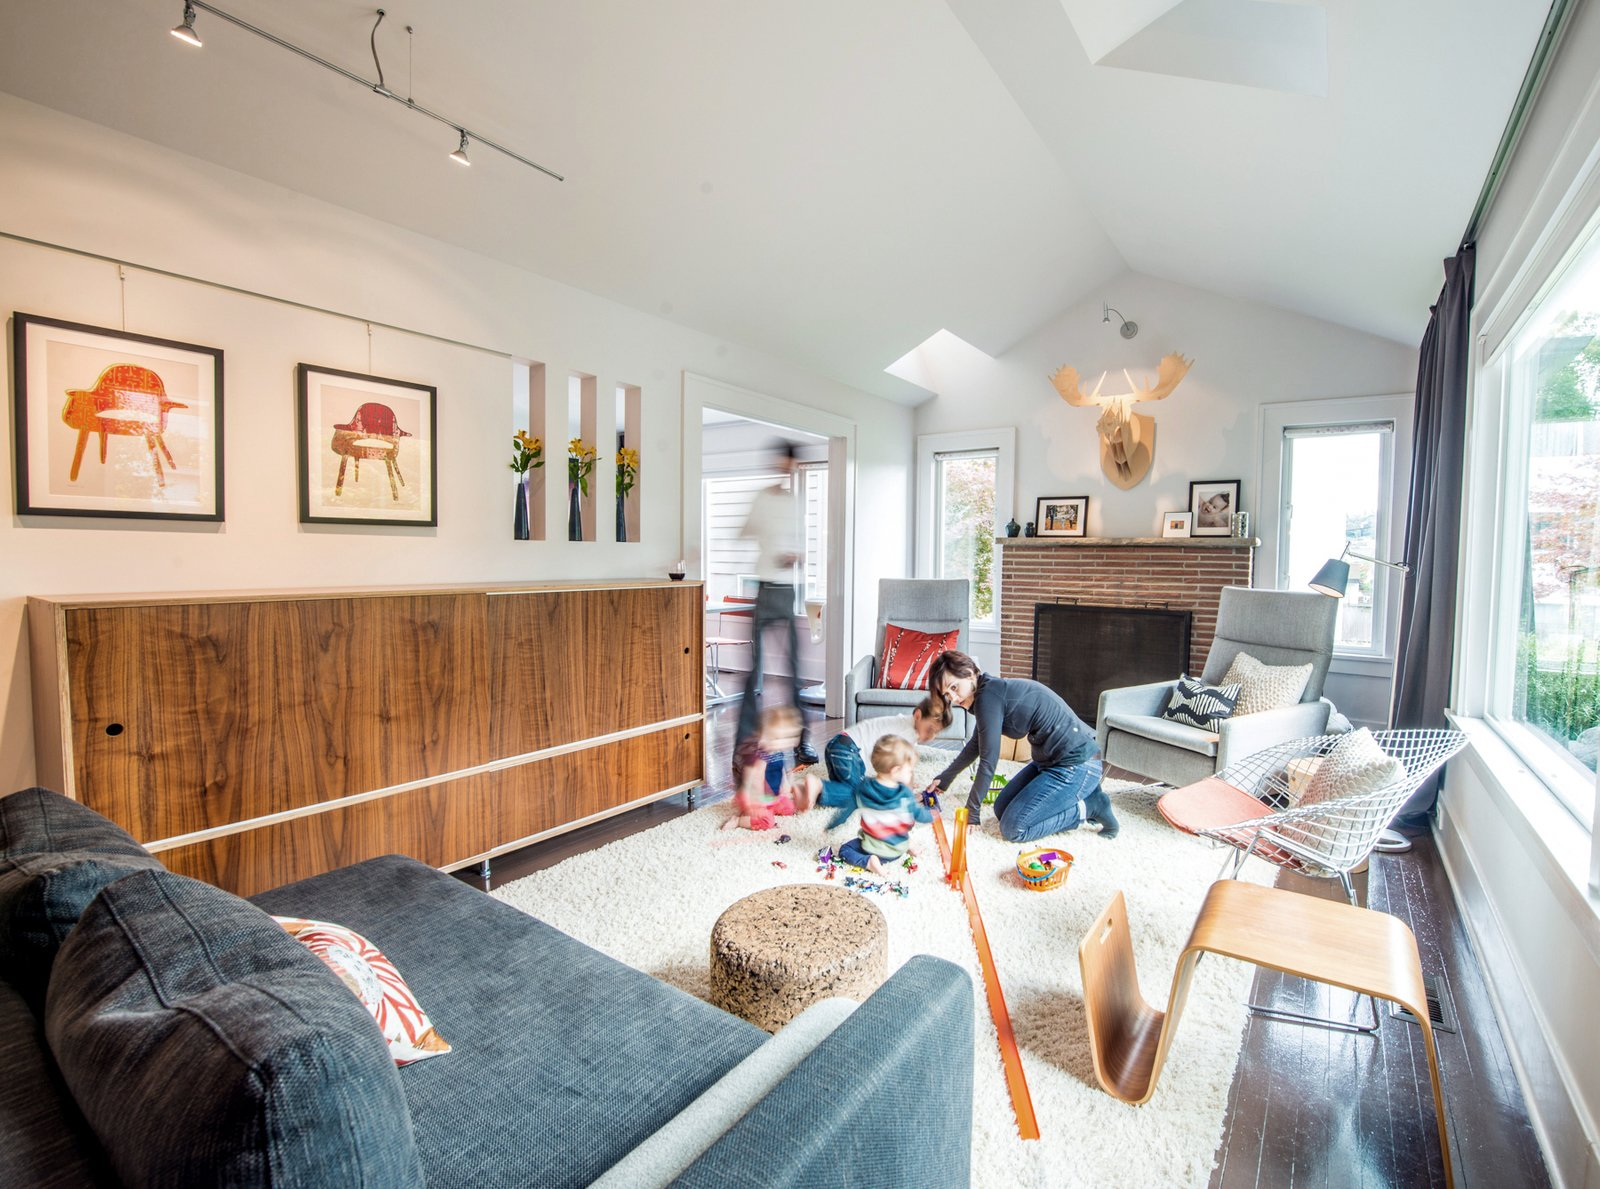 The Imhoffs vaulted the ceiling in their living room, dispensing with the old attic and carving out skylights to draw natural light into the space.  Photo 10 of 11 in 10 Bright and Airy Modern Attic Renovations